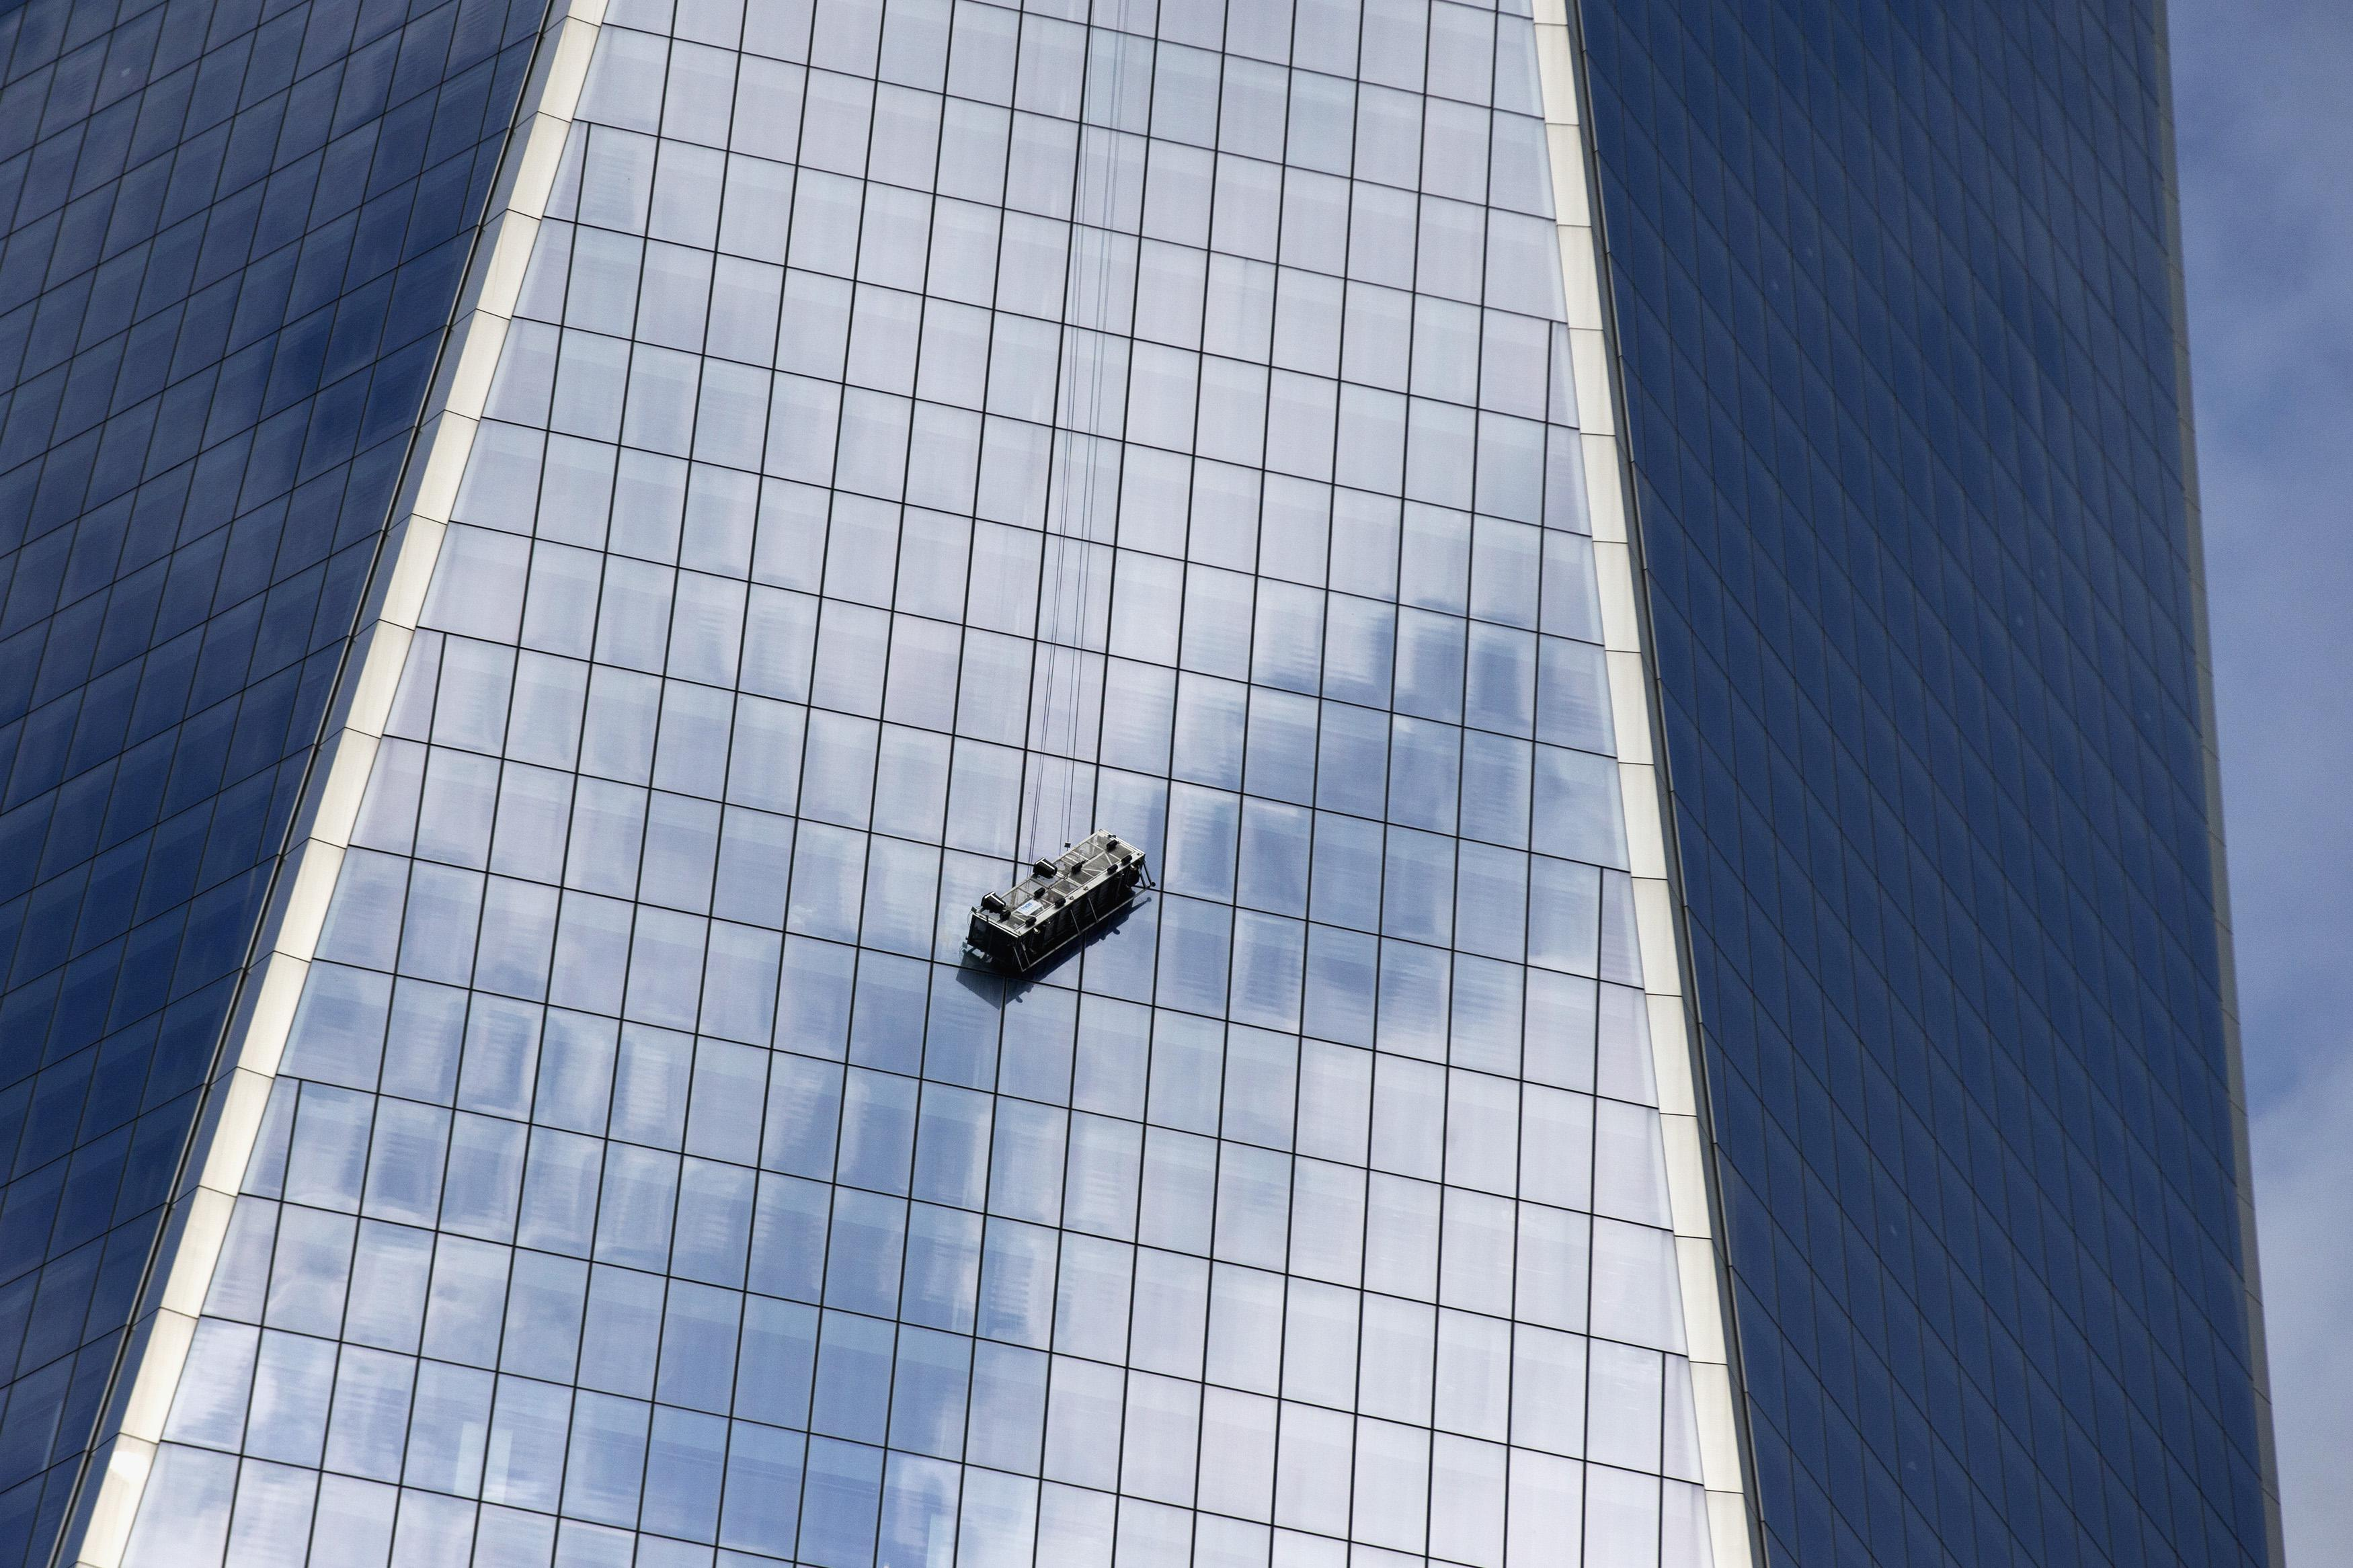 Window washers rescued from scaffold dangling at 1 World Trade Center